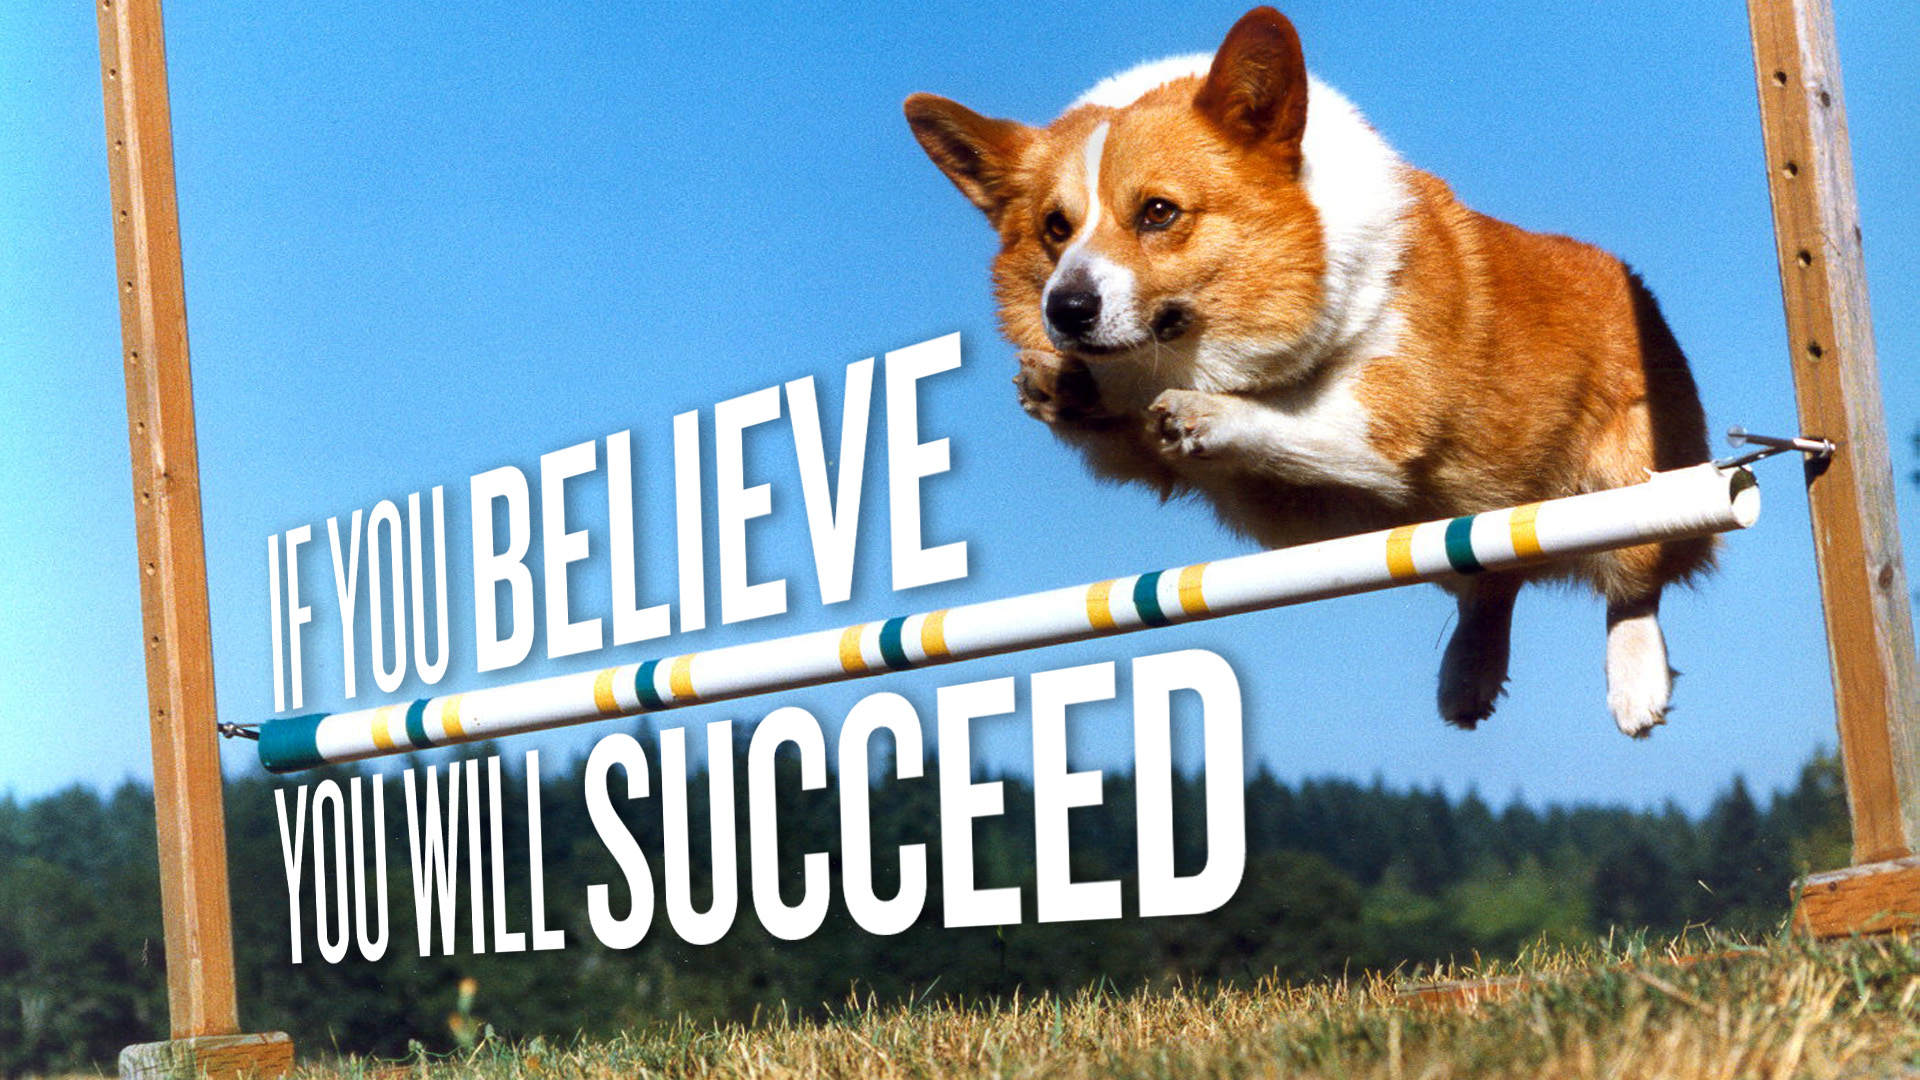 if you believe, you will succeed